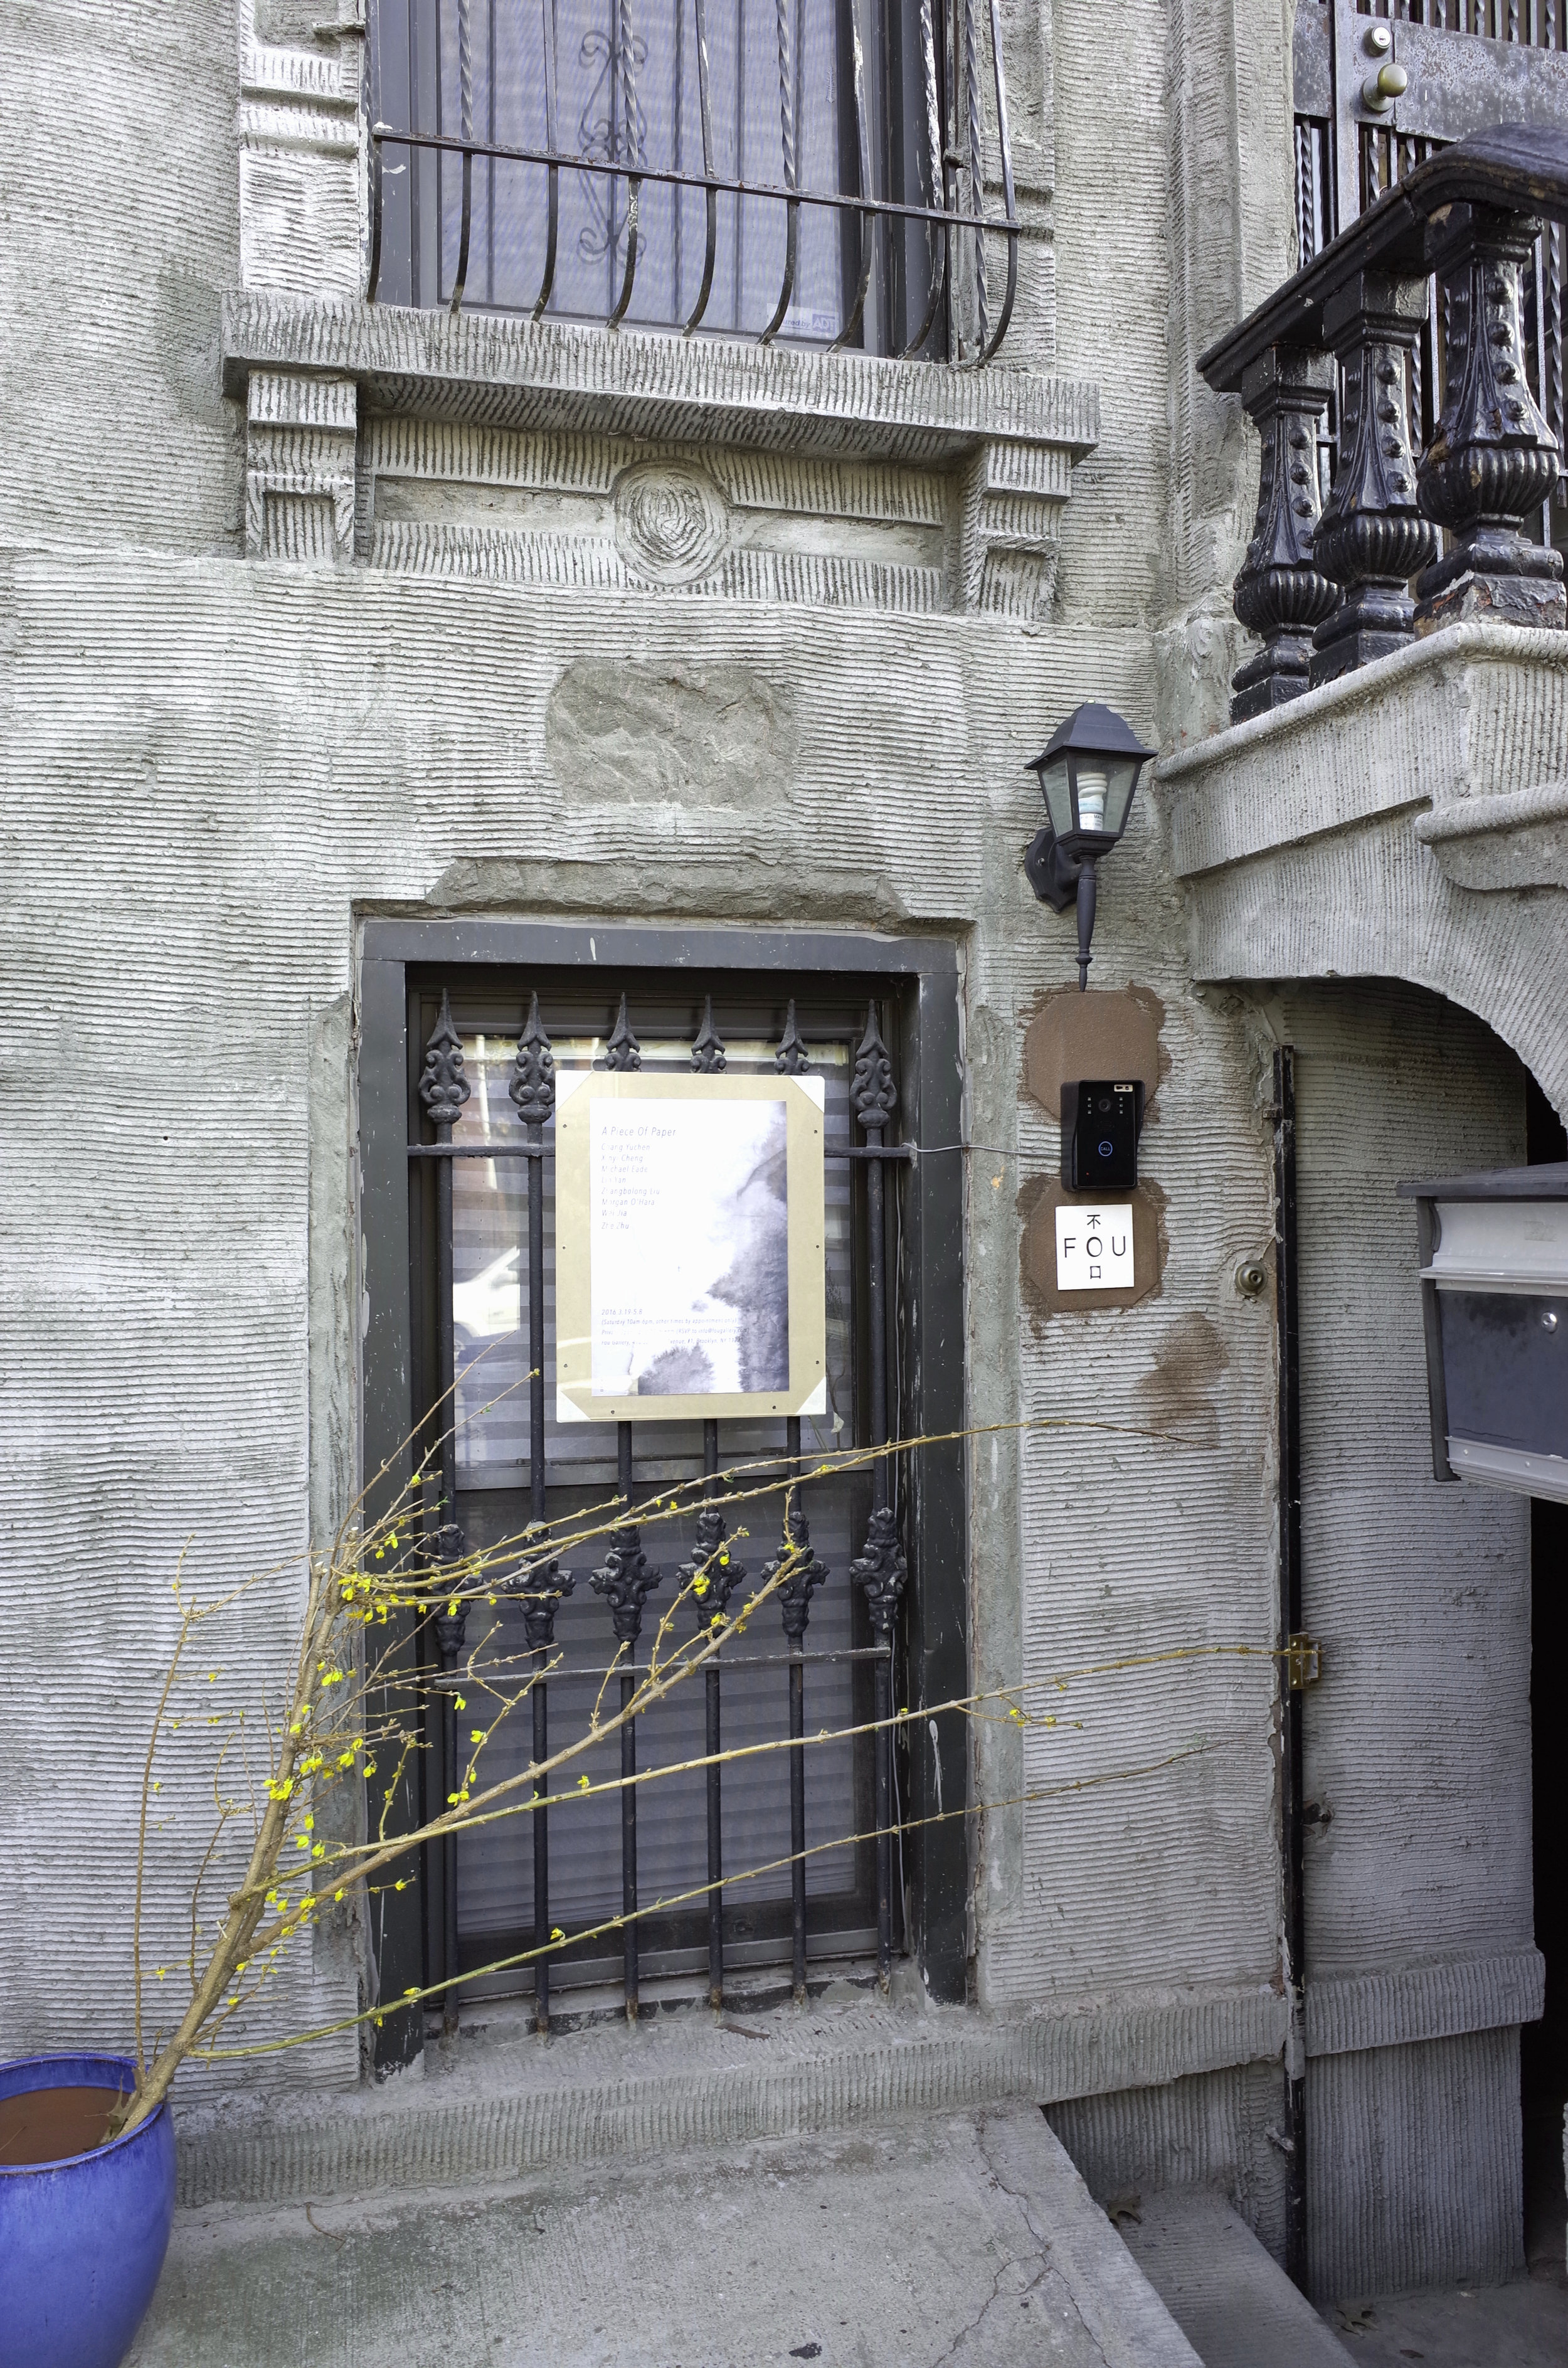 Fou Gallery exterior, 2016. Photograph by Echo He 否画廊外观,摄影:何雨